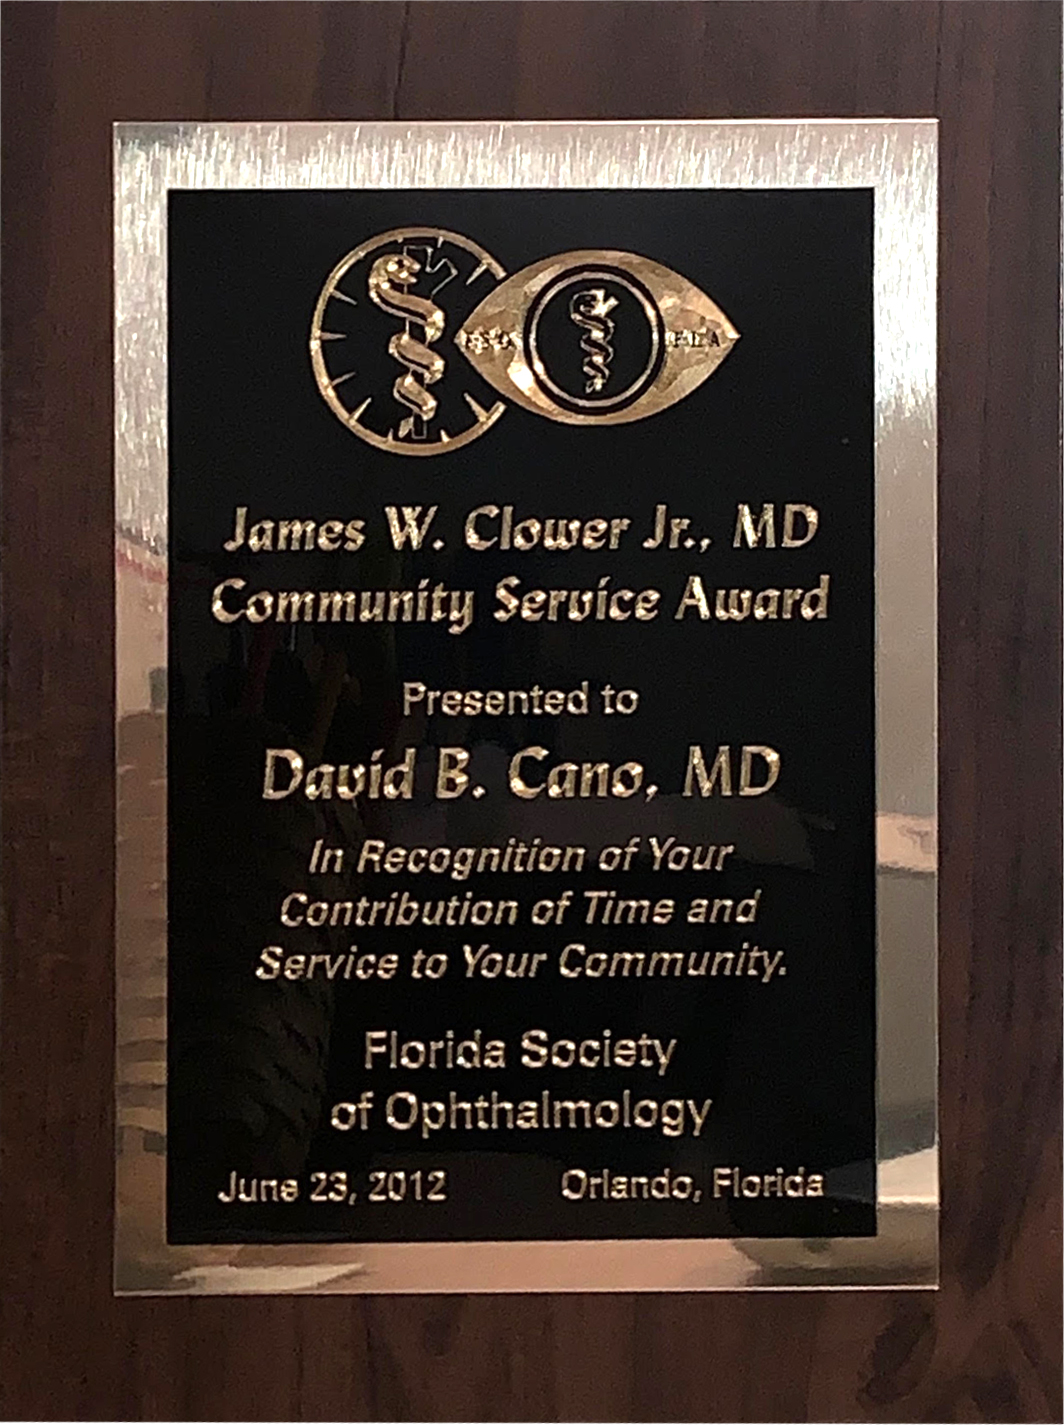 James W. Clower Jr., MD Community Service Award